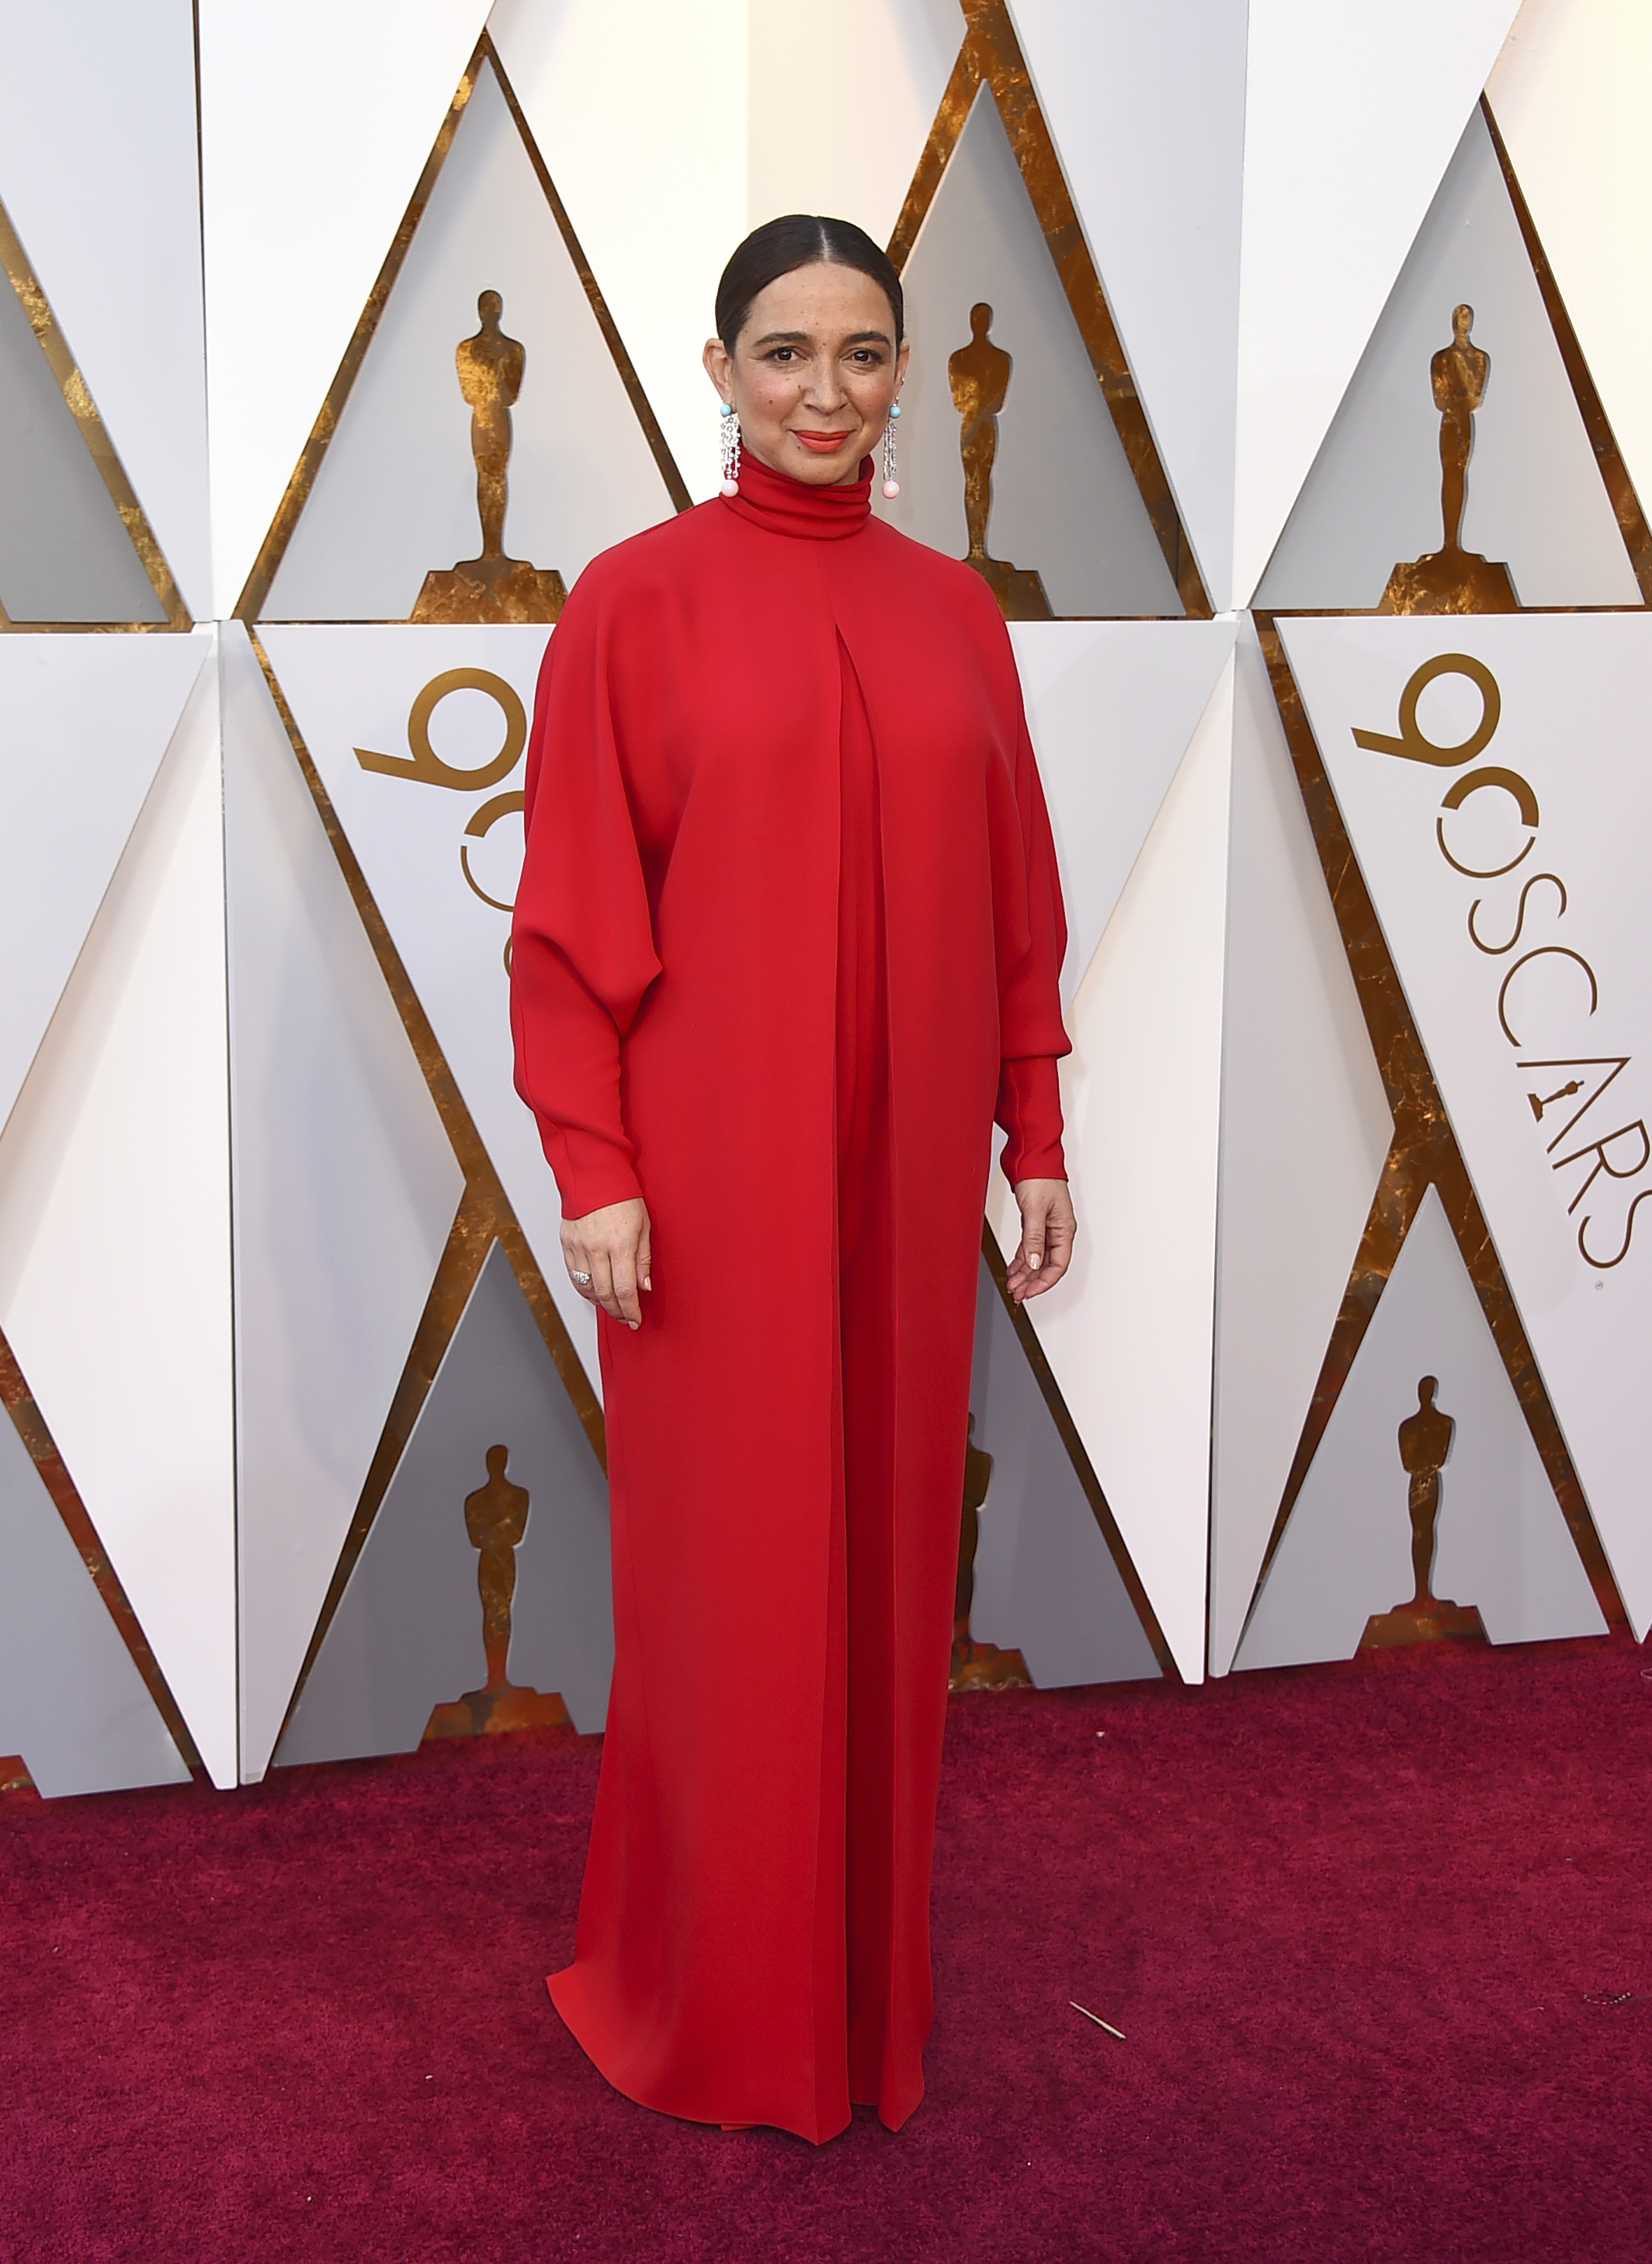 <div class='meta'><div class='origin-logo' data-origin='none'></div><span class='caption-text' data-credit='Jordan Strauss/Invision/AP'>Maya Rudolph arrives at the Oscars on Sunday, March 4, 2018, at the Dolby Theatre in Los Angeles.</span></div>